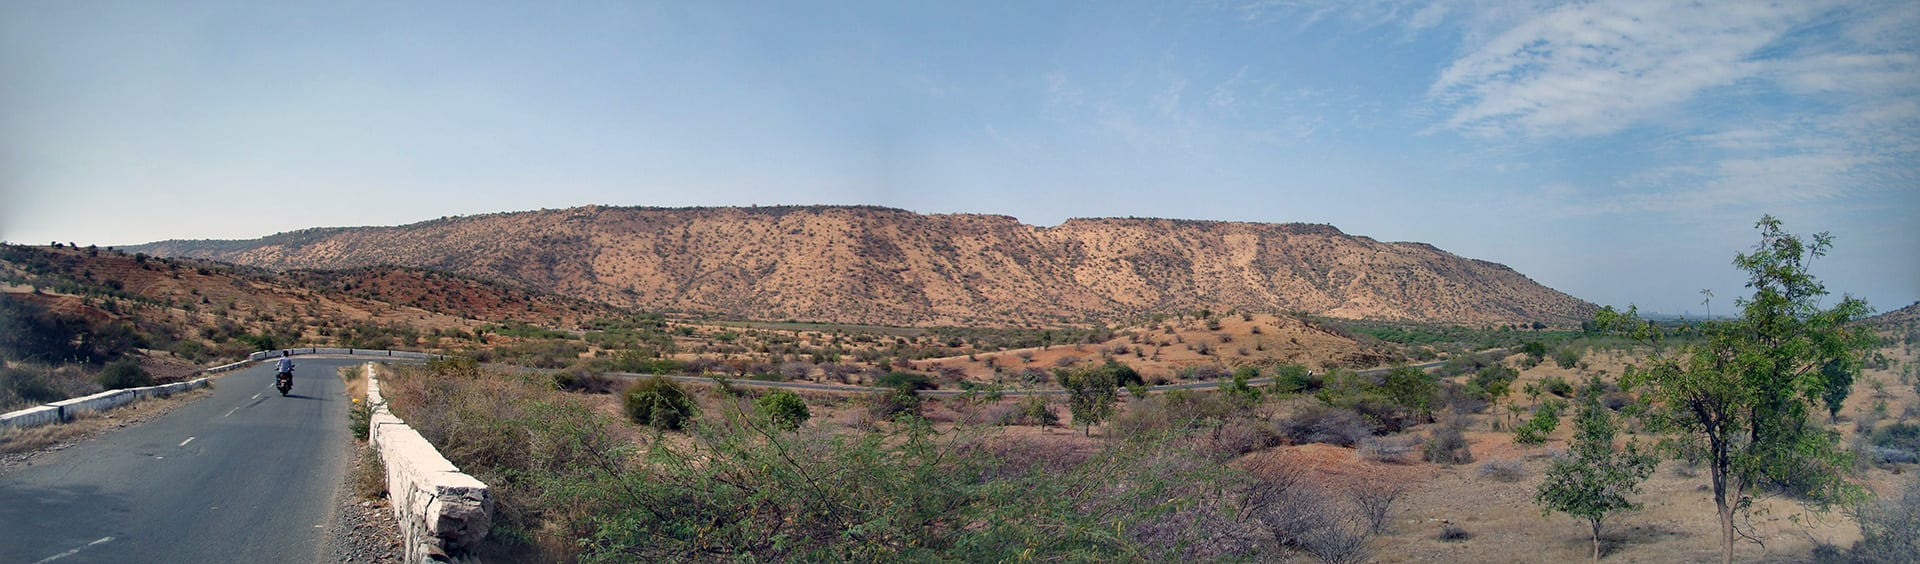 Panoramic_Shot_Ghat_Section